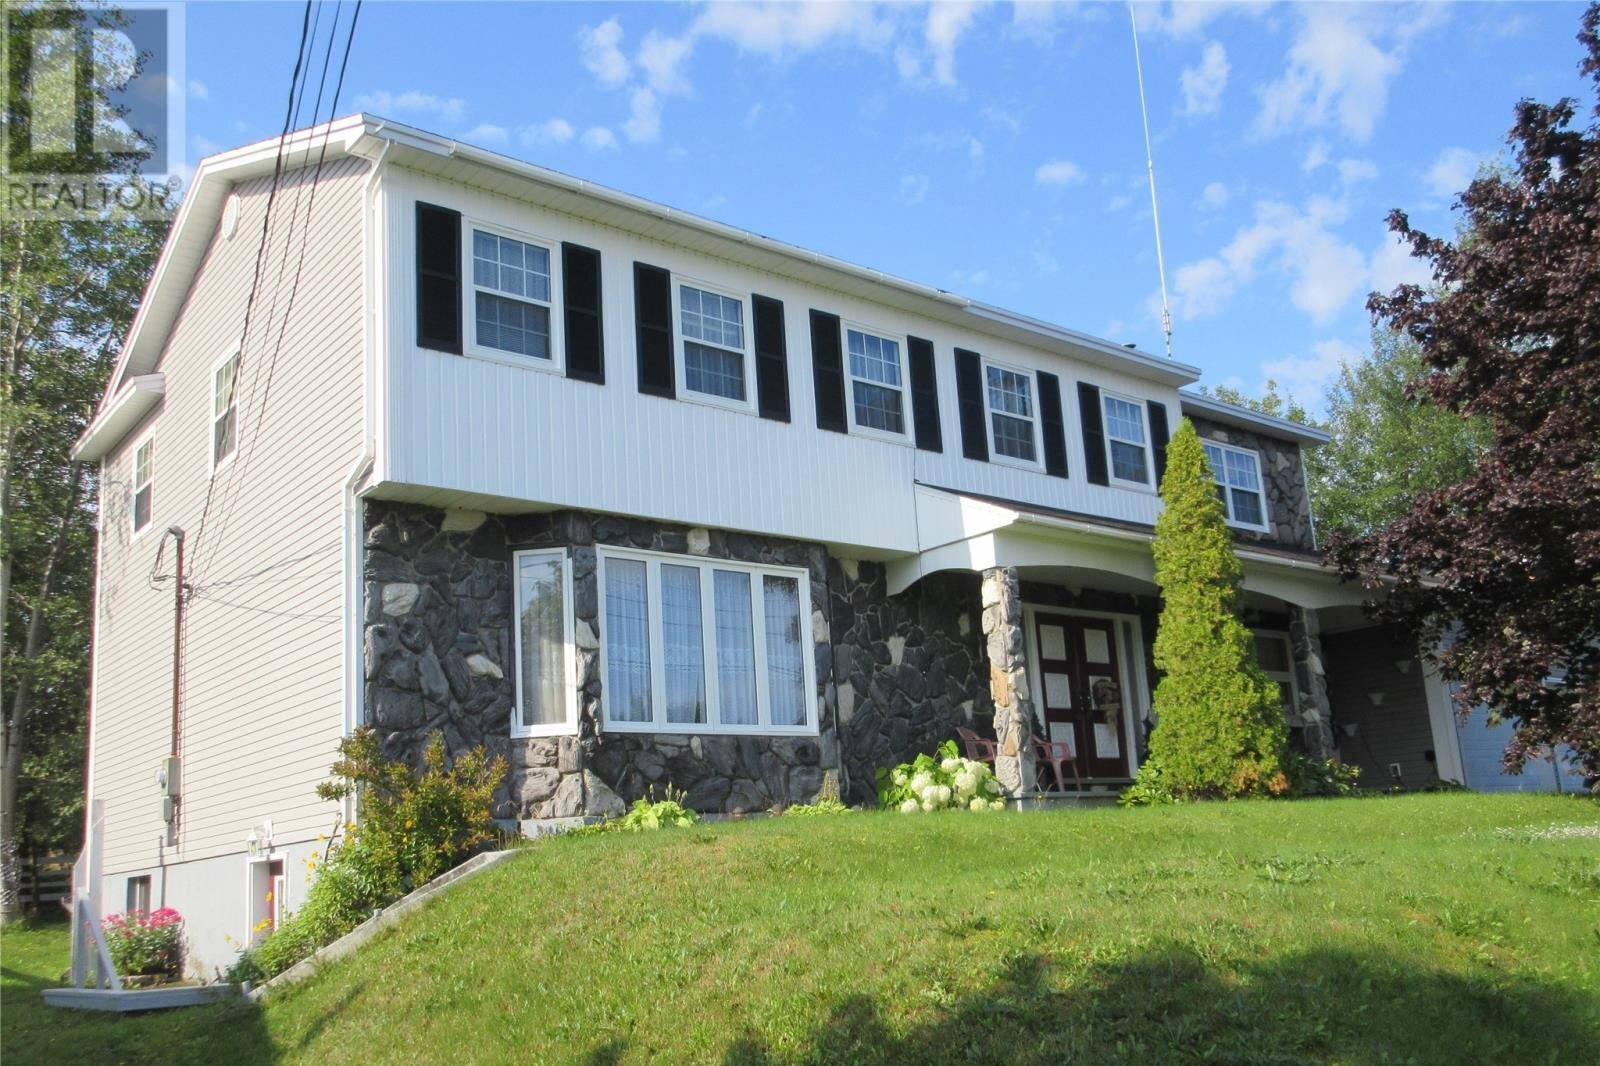 House for sale at 13 Harbourview Rd Botwood Newfoundland - MLS: 1223052